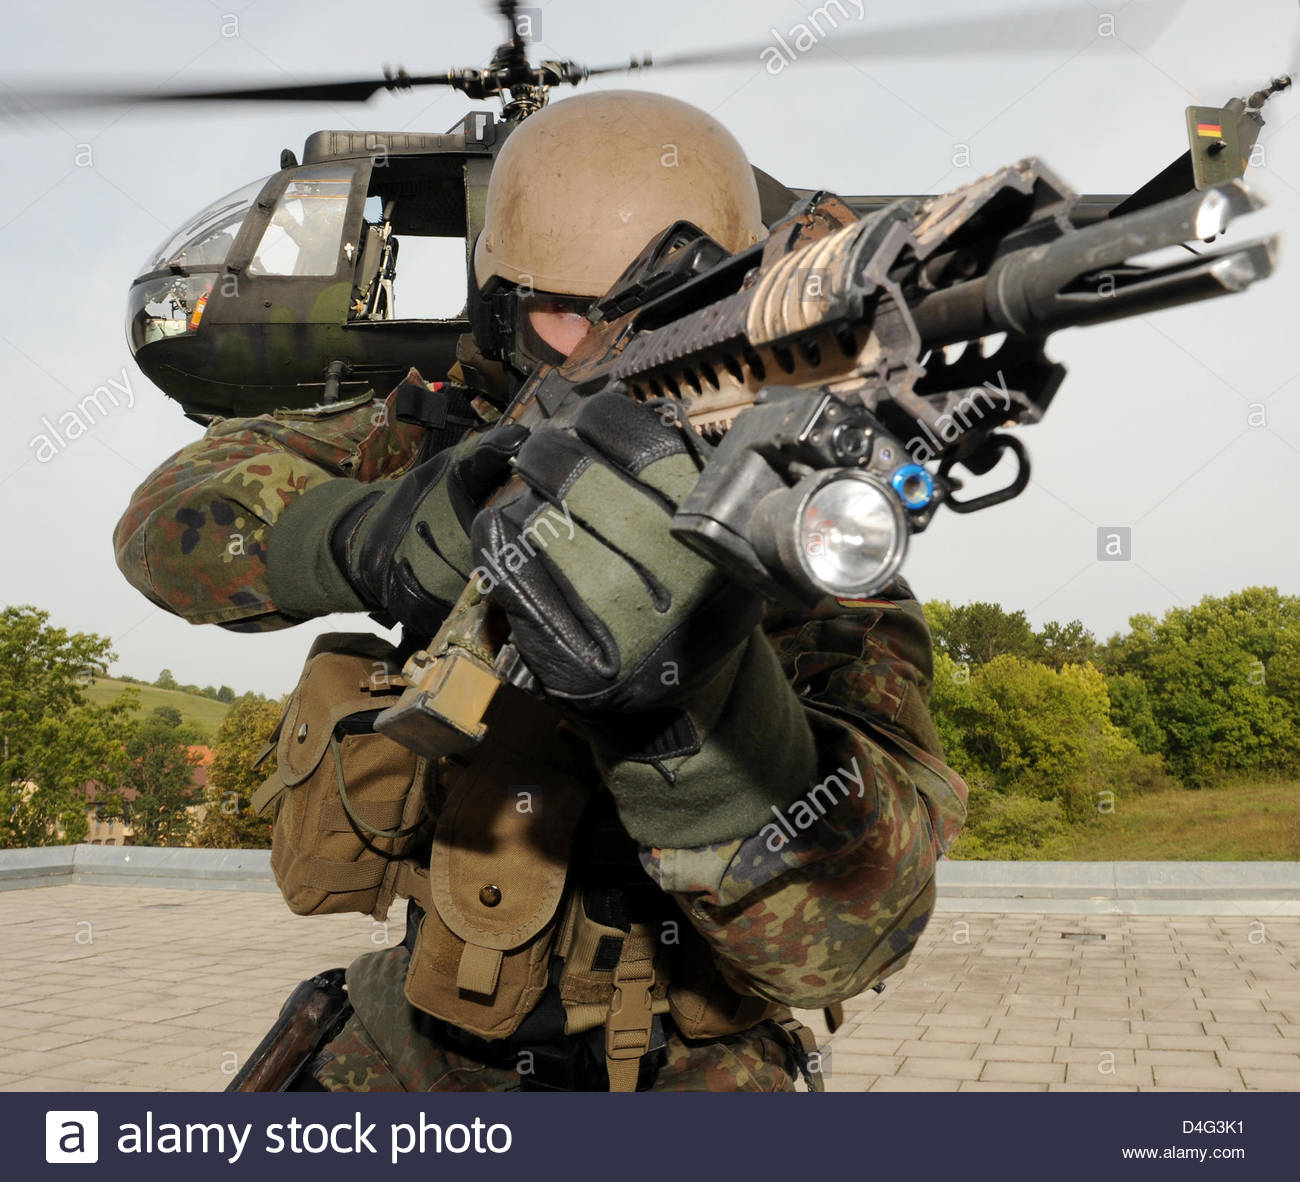 german-bundeswehr-soldiers-of-the-special-forces-commando-ksk-pictured-D4G3K1.jpg